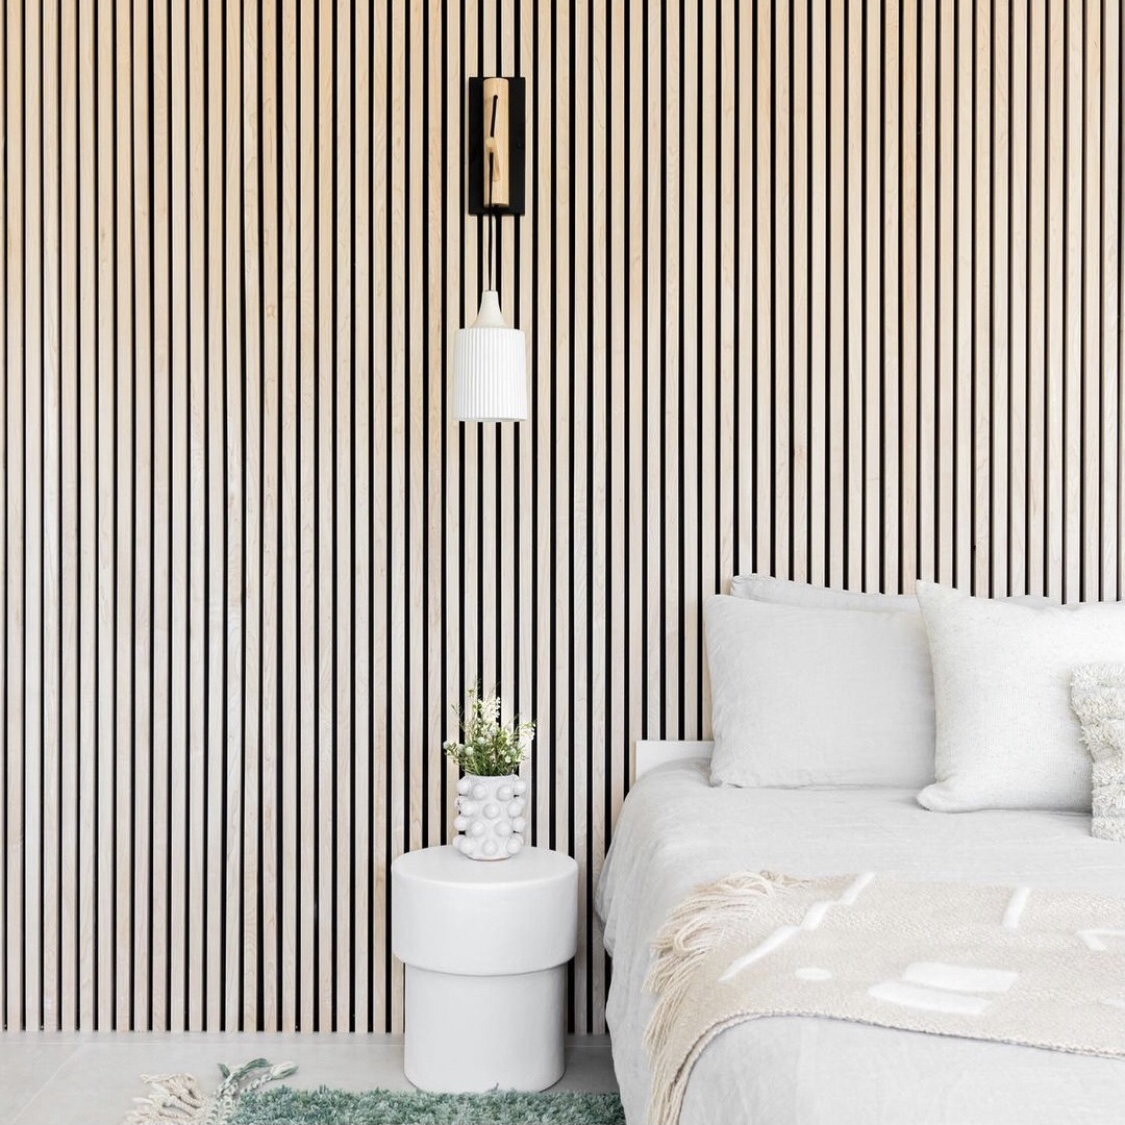 Trend Alert_Plaster_harlow-and-thistle-1